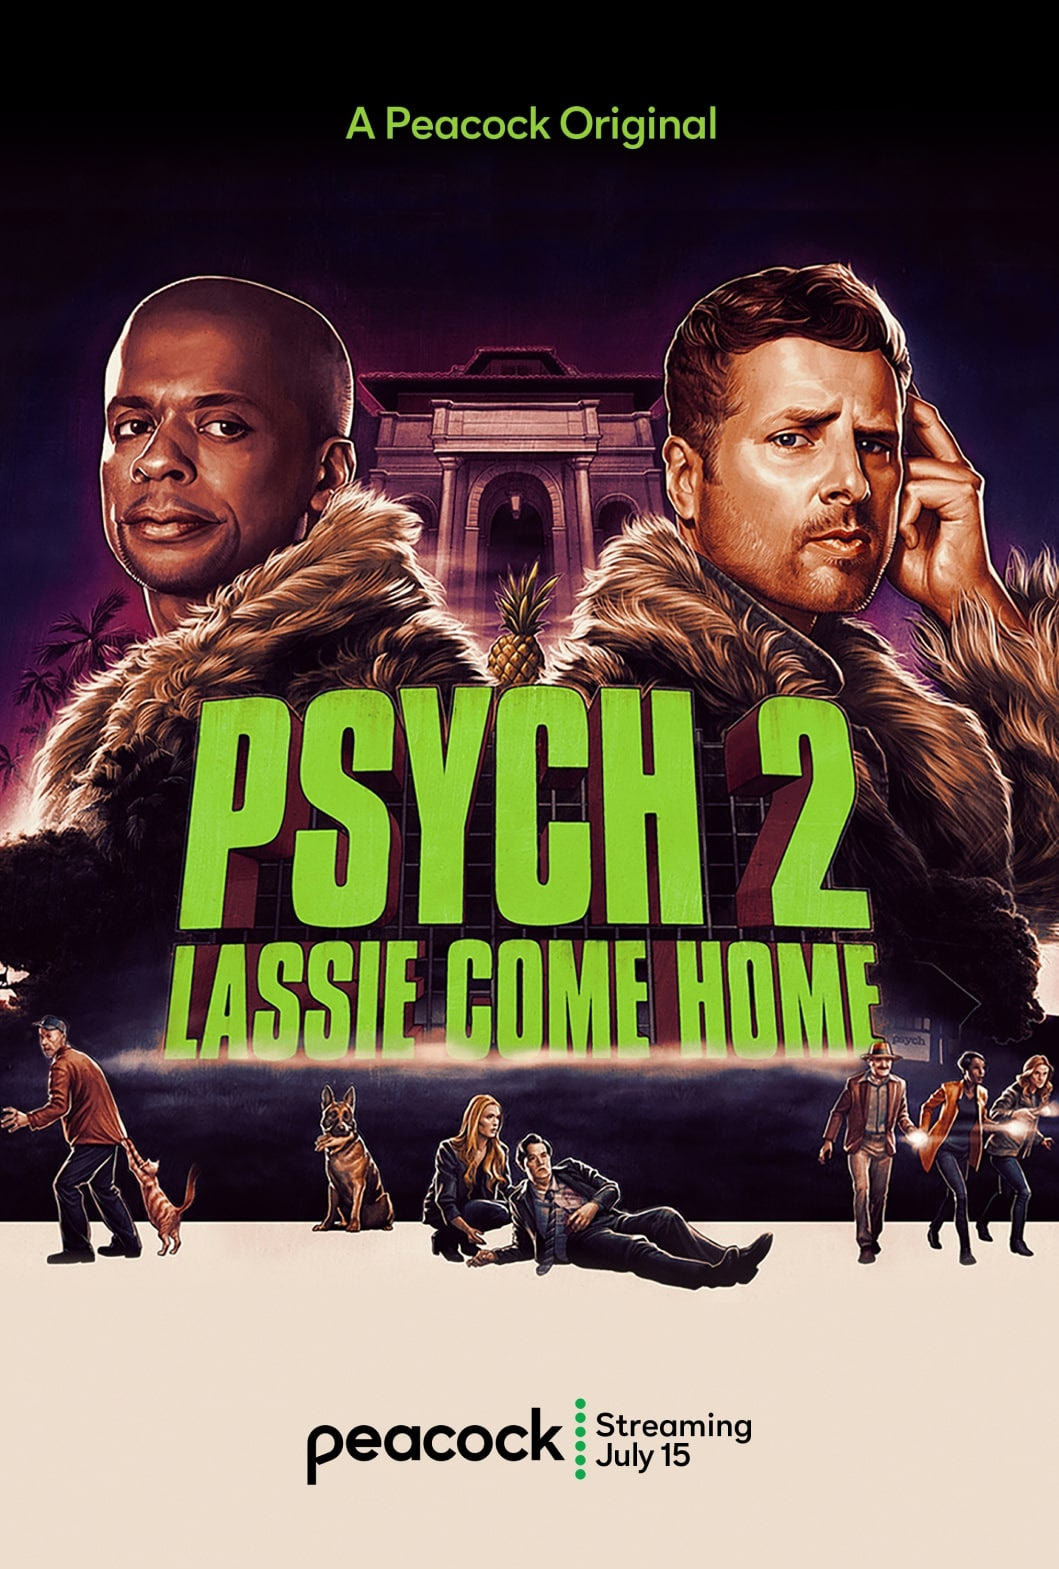 Watch Psych 2 Lassie Come Home Online Peacock